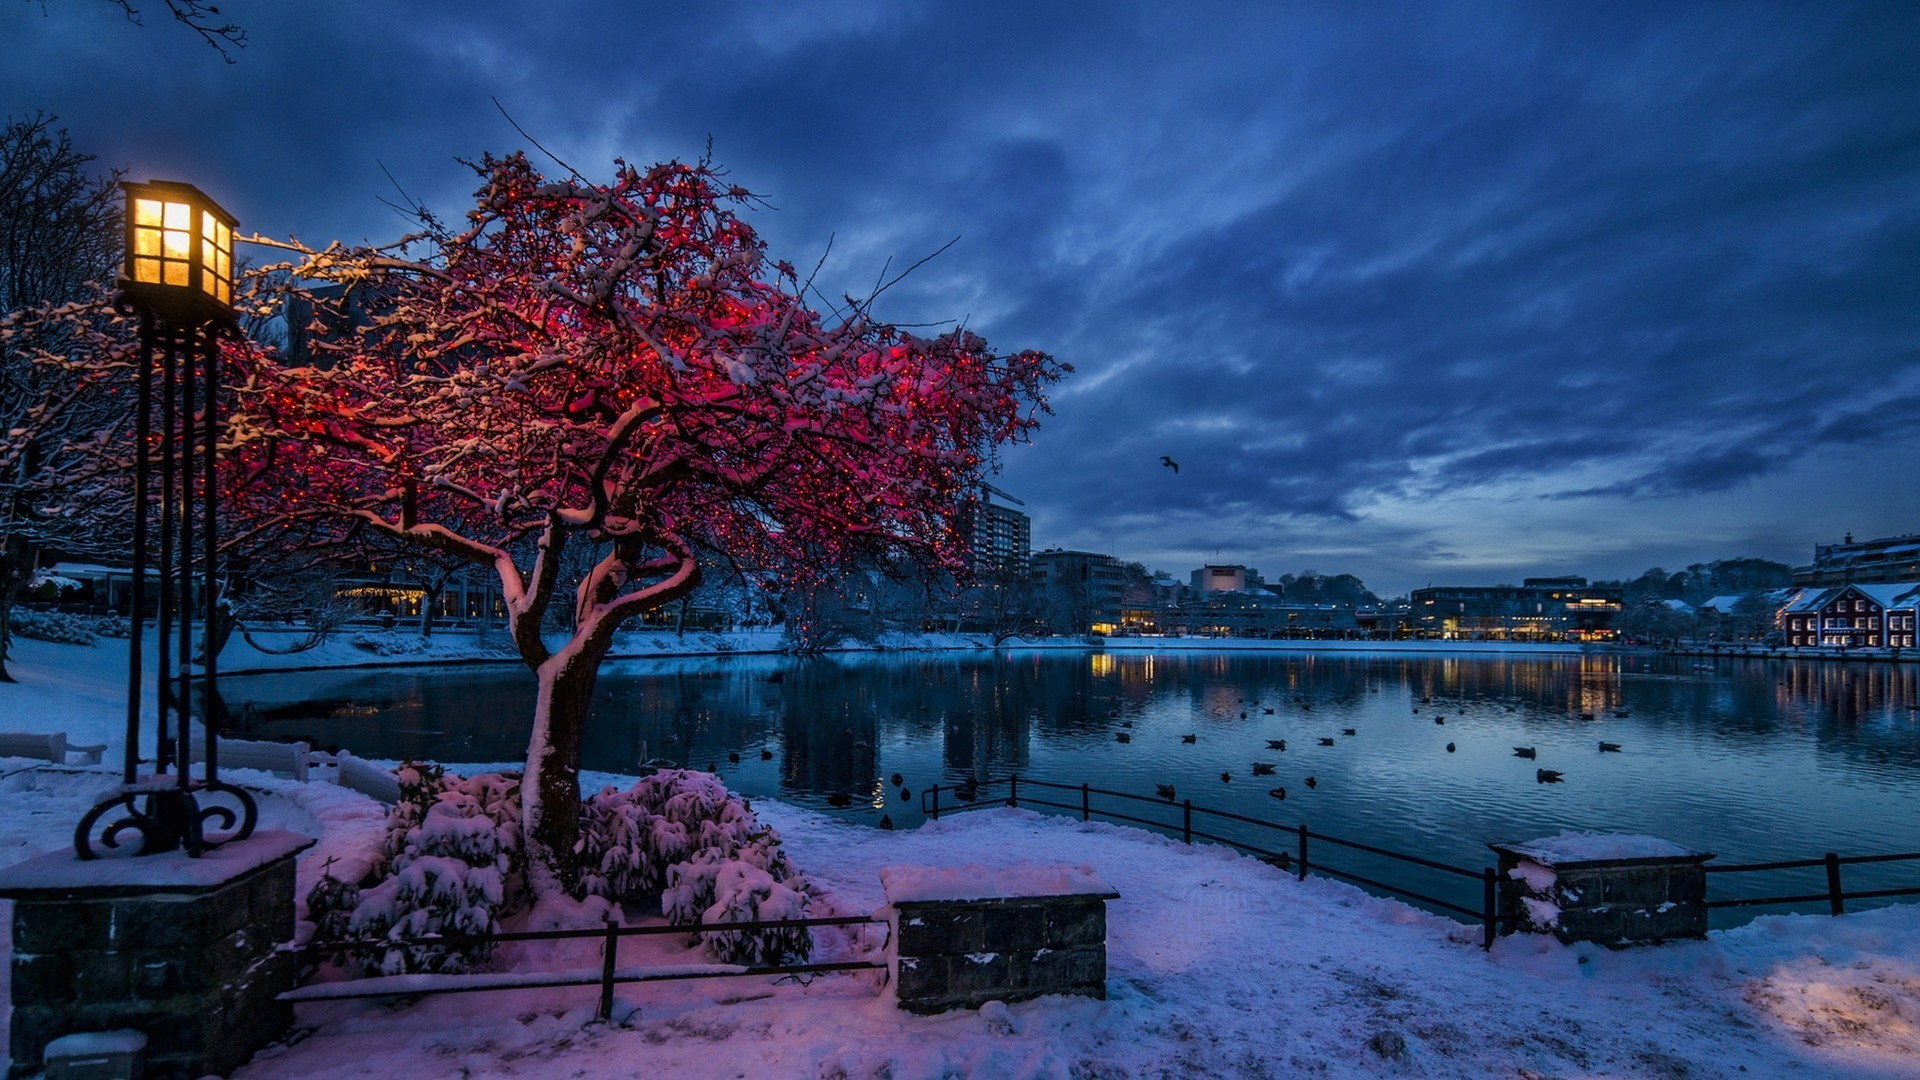 Snow Wallpapers 1920x1080 Full Hd: Snow In The City Wallpaper (65+ Images